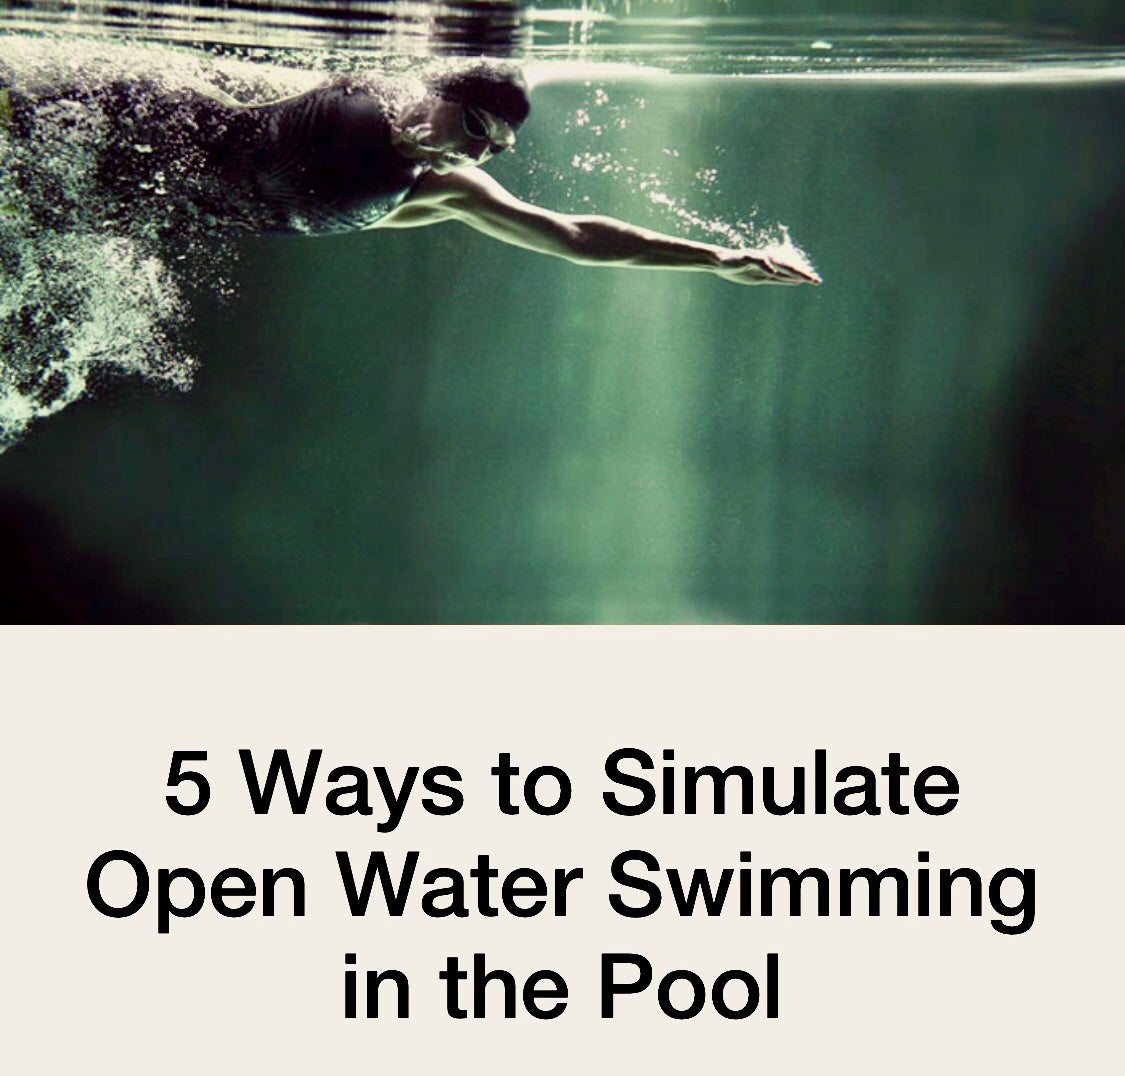 FINIS Australia explores ways to simulate open water swimming in the pool